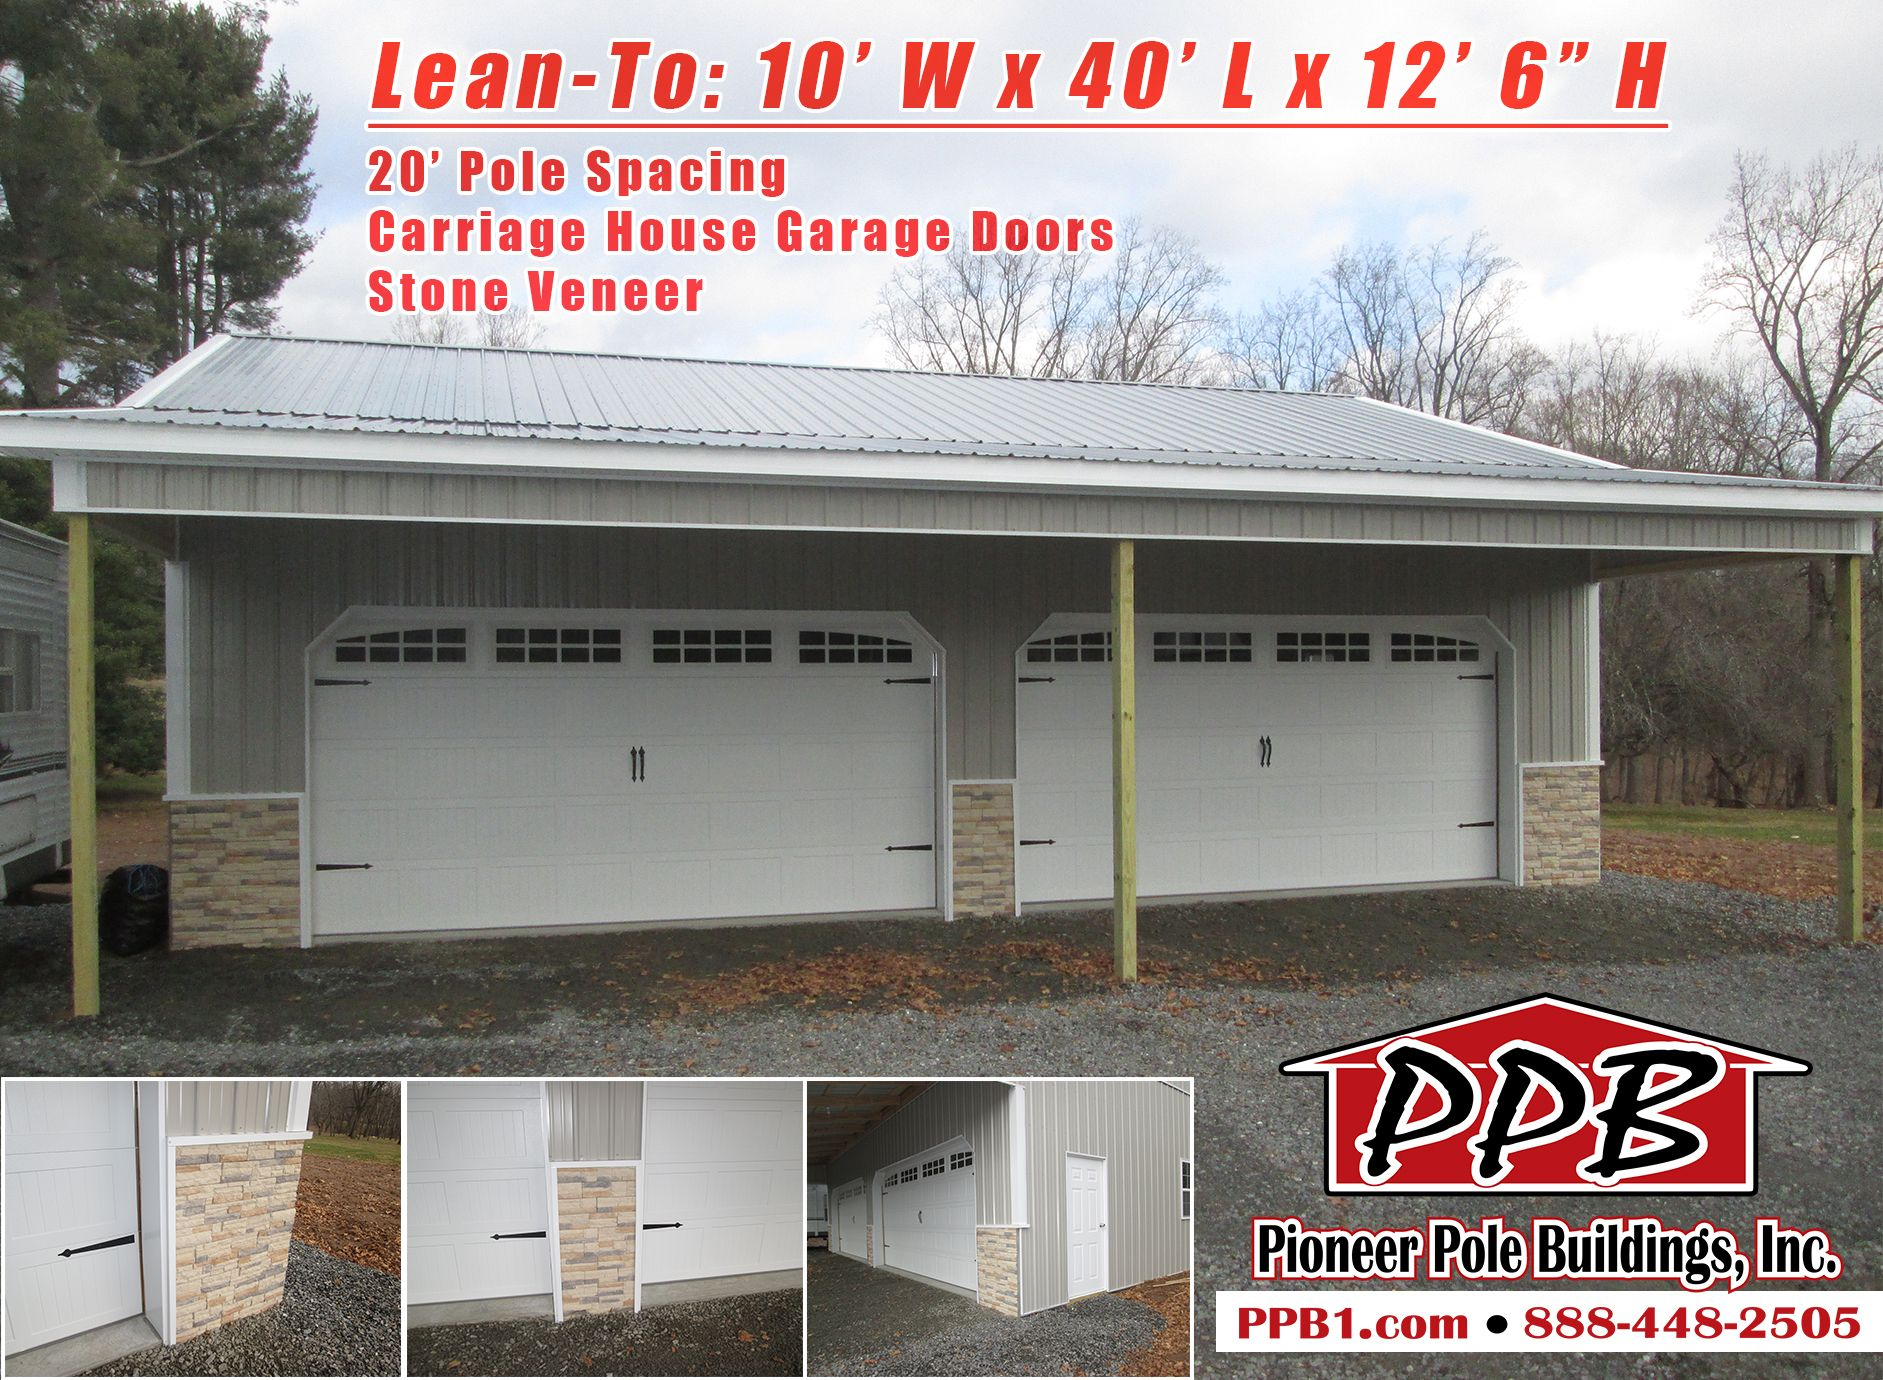 Lean To 10 W X 40 L X 12 6 H 20 Pole Spacing 2 16 X 8 Carriage House Garage Doors With 3 Piece Arc Carriage House Garage Doors Pole Buildings